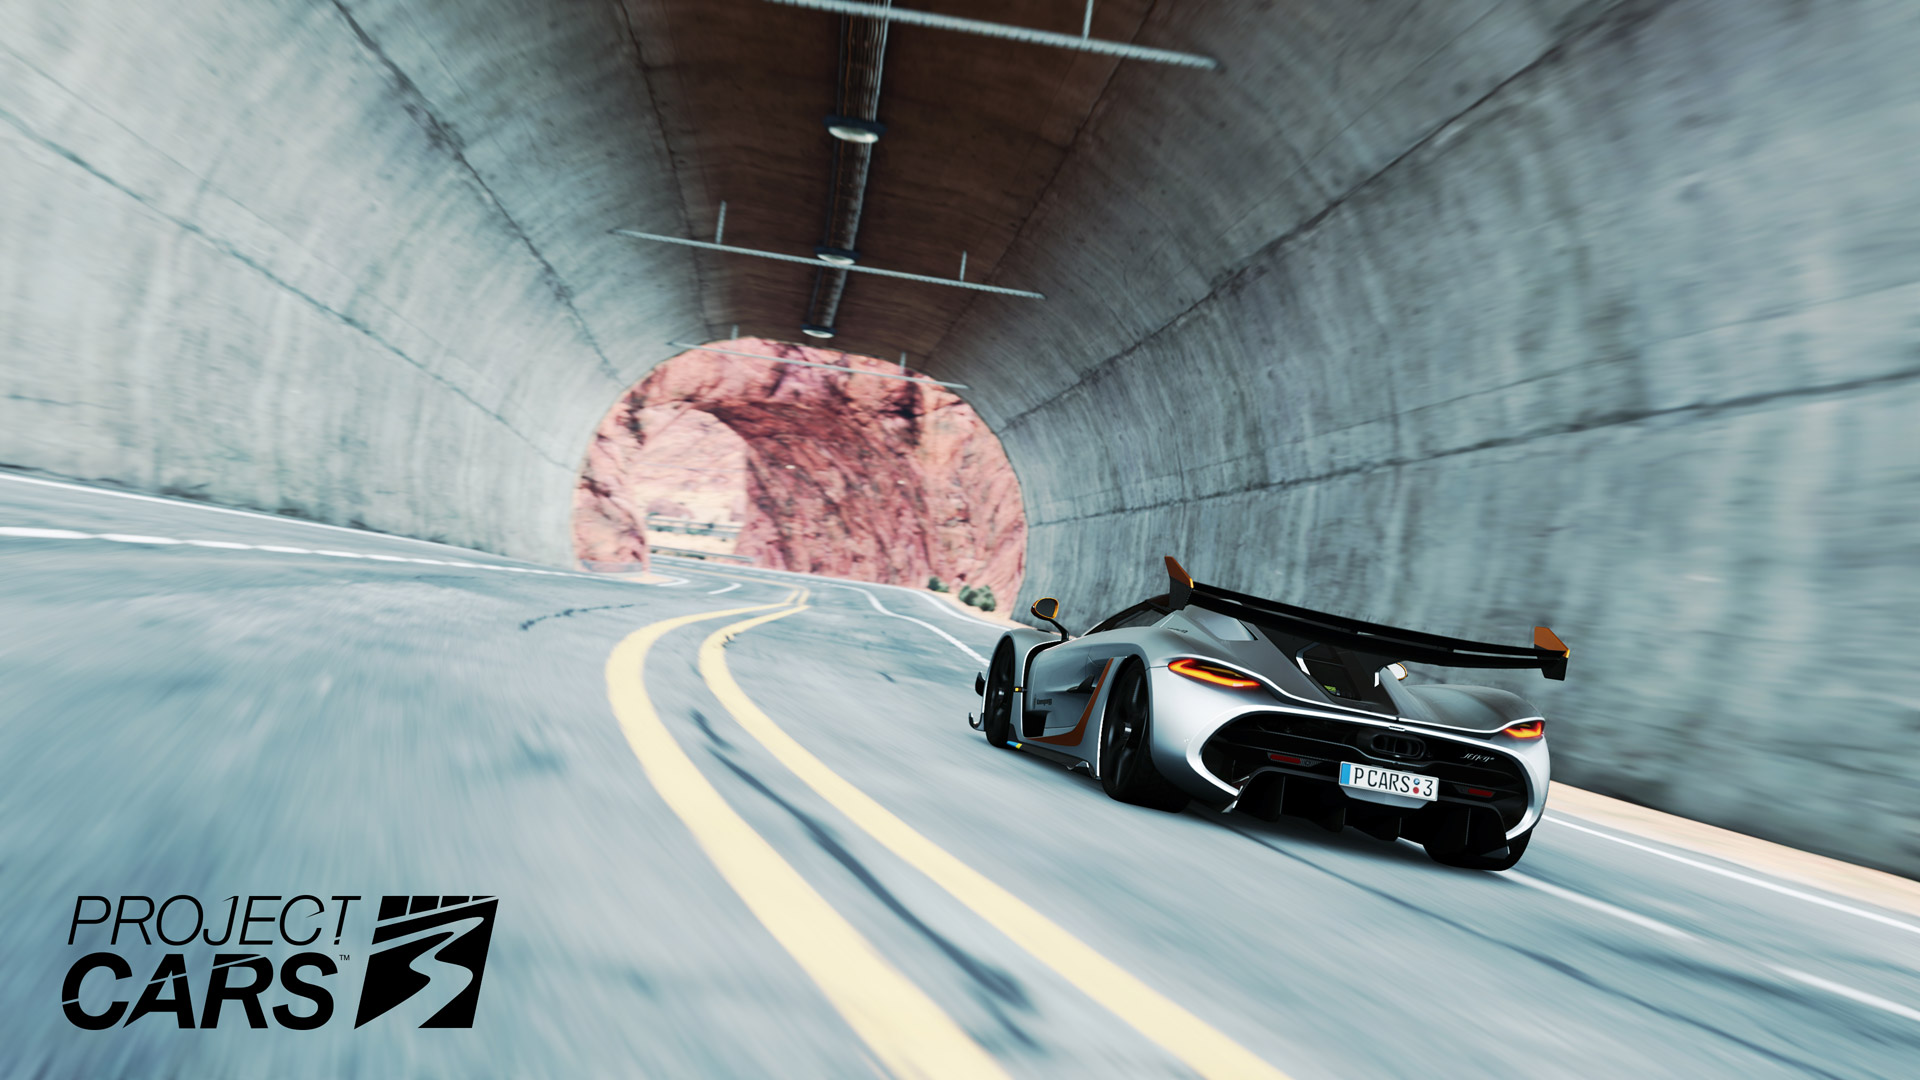 Project Cars 3 Wallpaper in 1920x1080